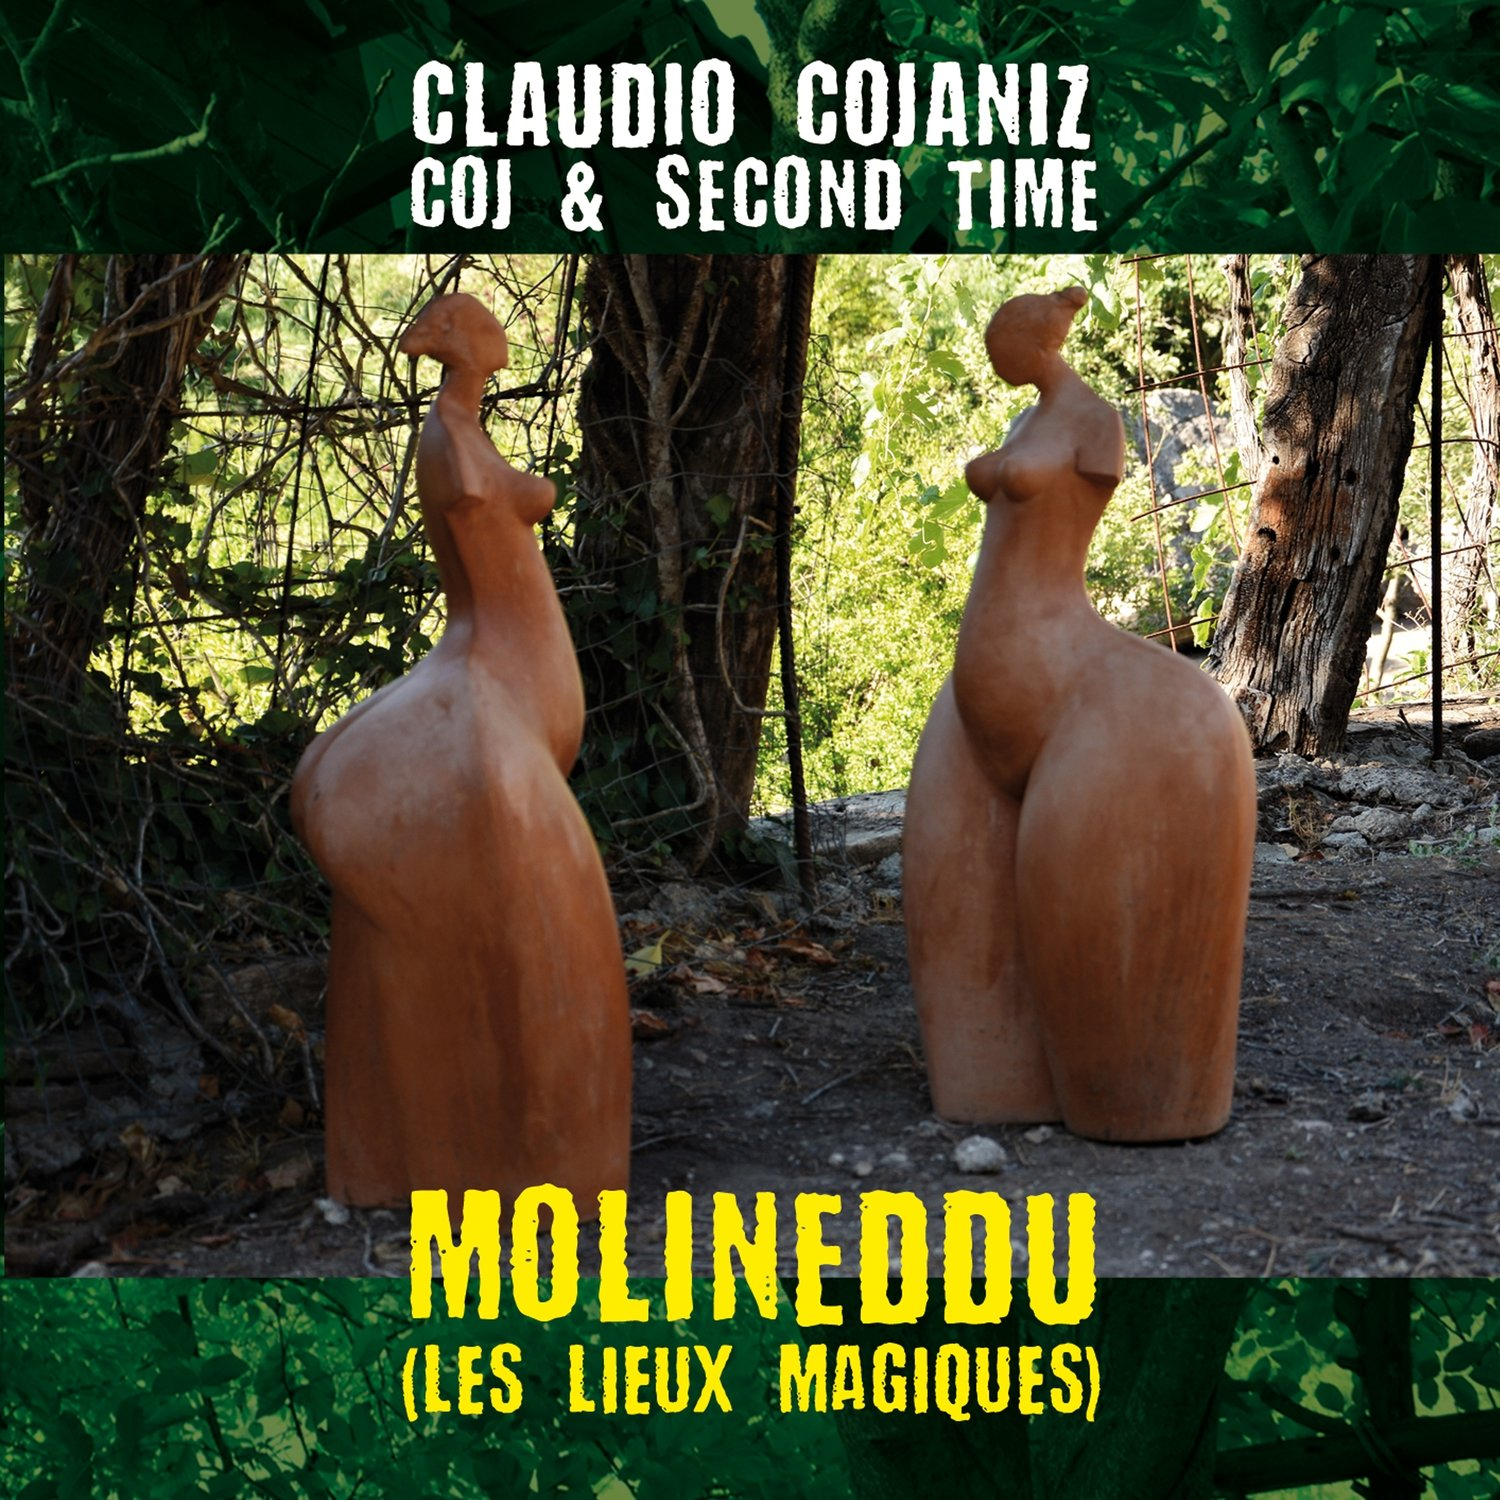 Claudio Cojaniz - COJ & SECOND TIME  «Molineddu»